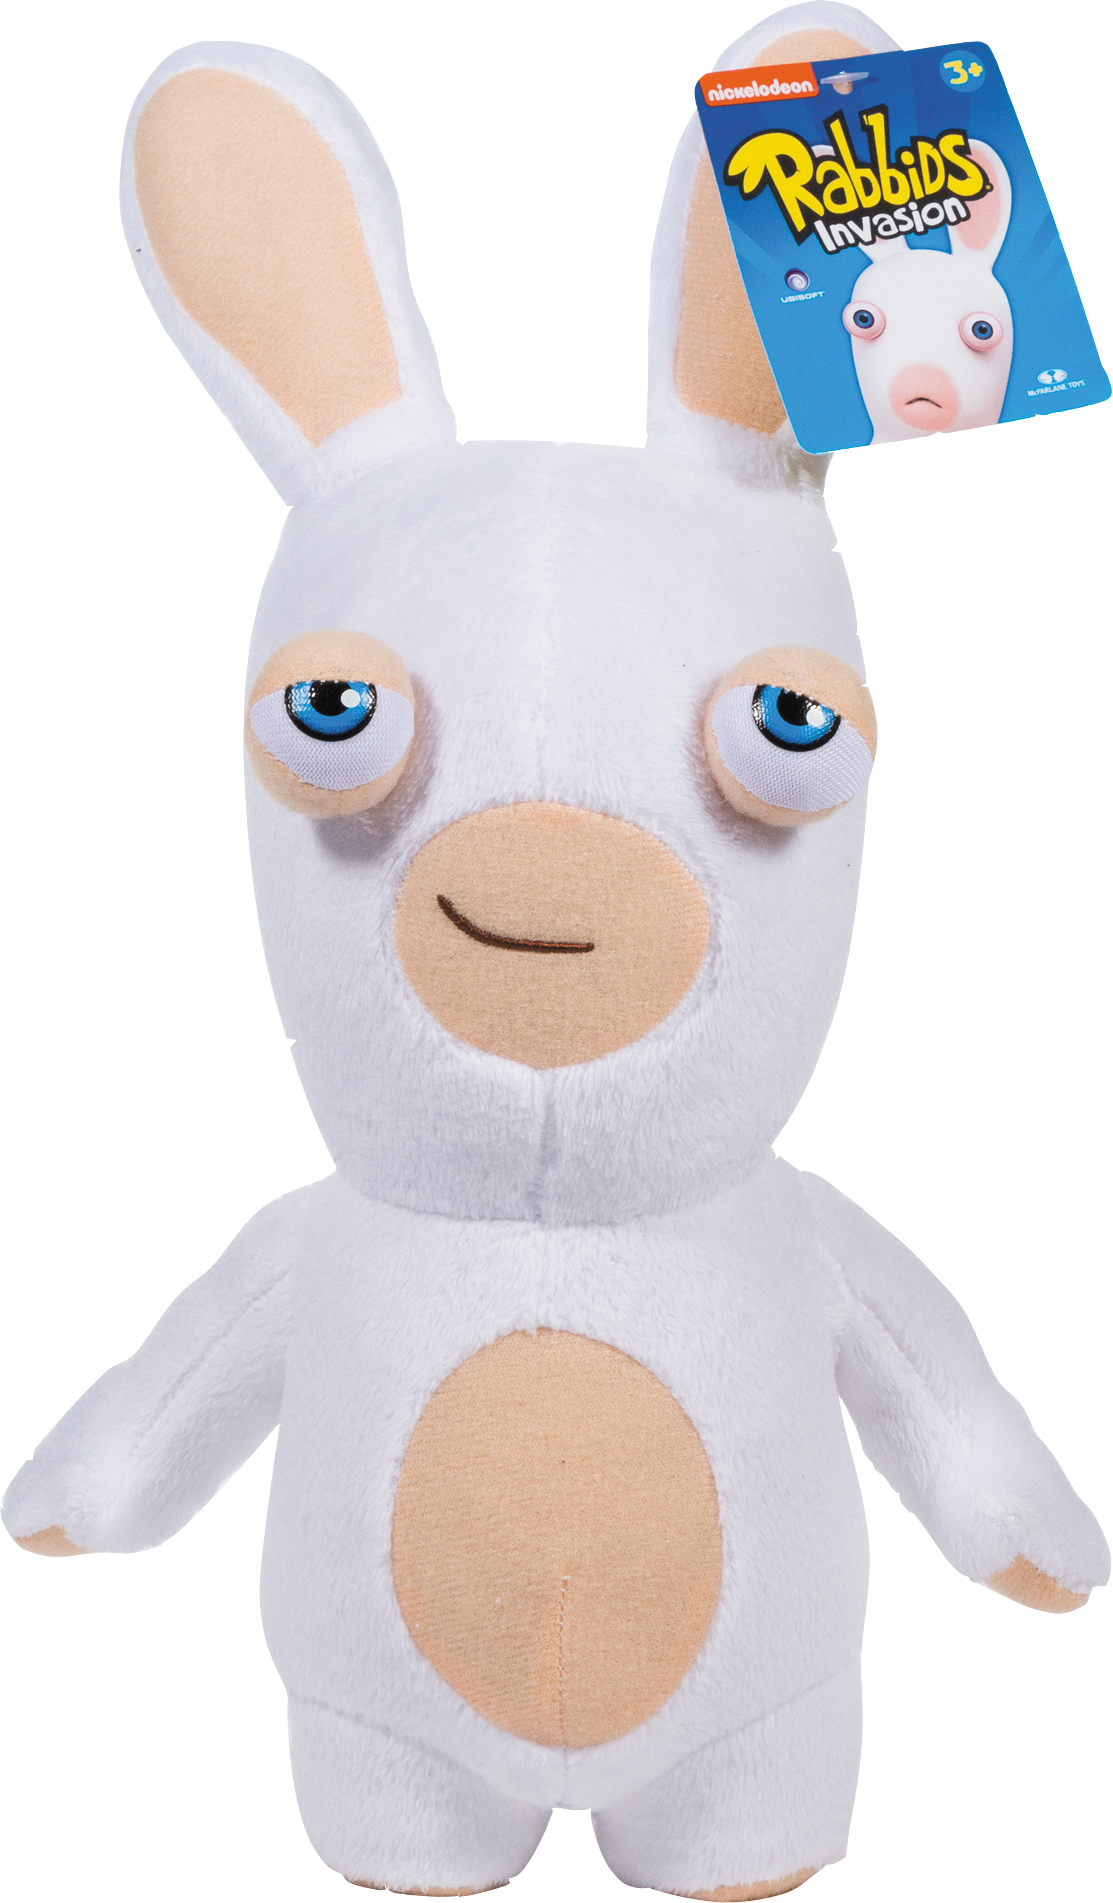 Five uniquely soft, lovable, yet wacky plush Rabbids from McFarlane available at Walmart for $12.97. (Photo: Business Wire)